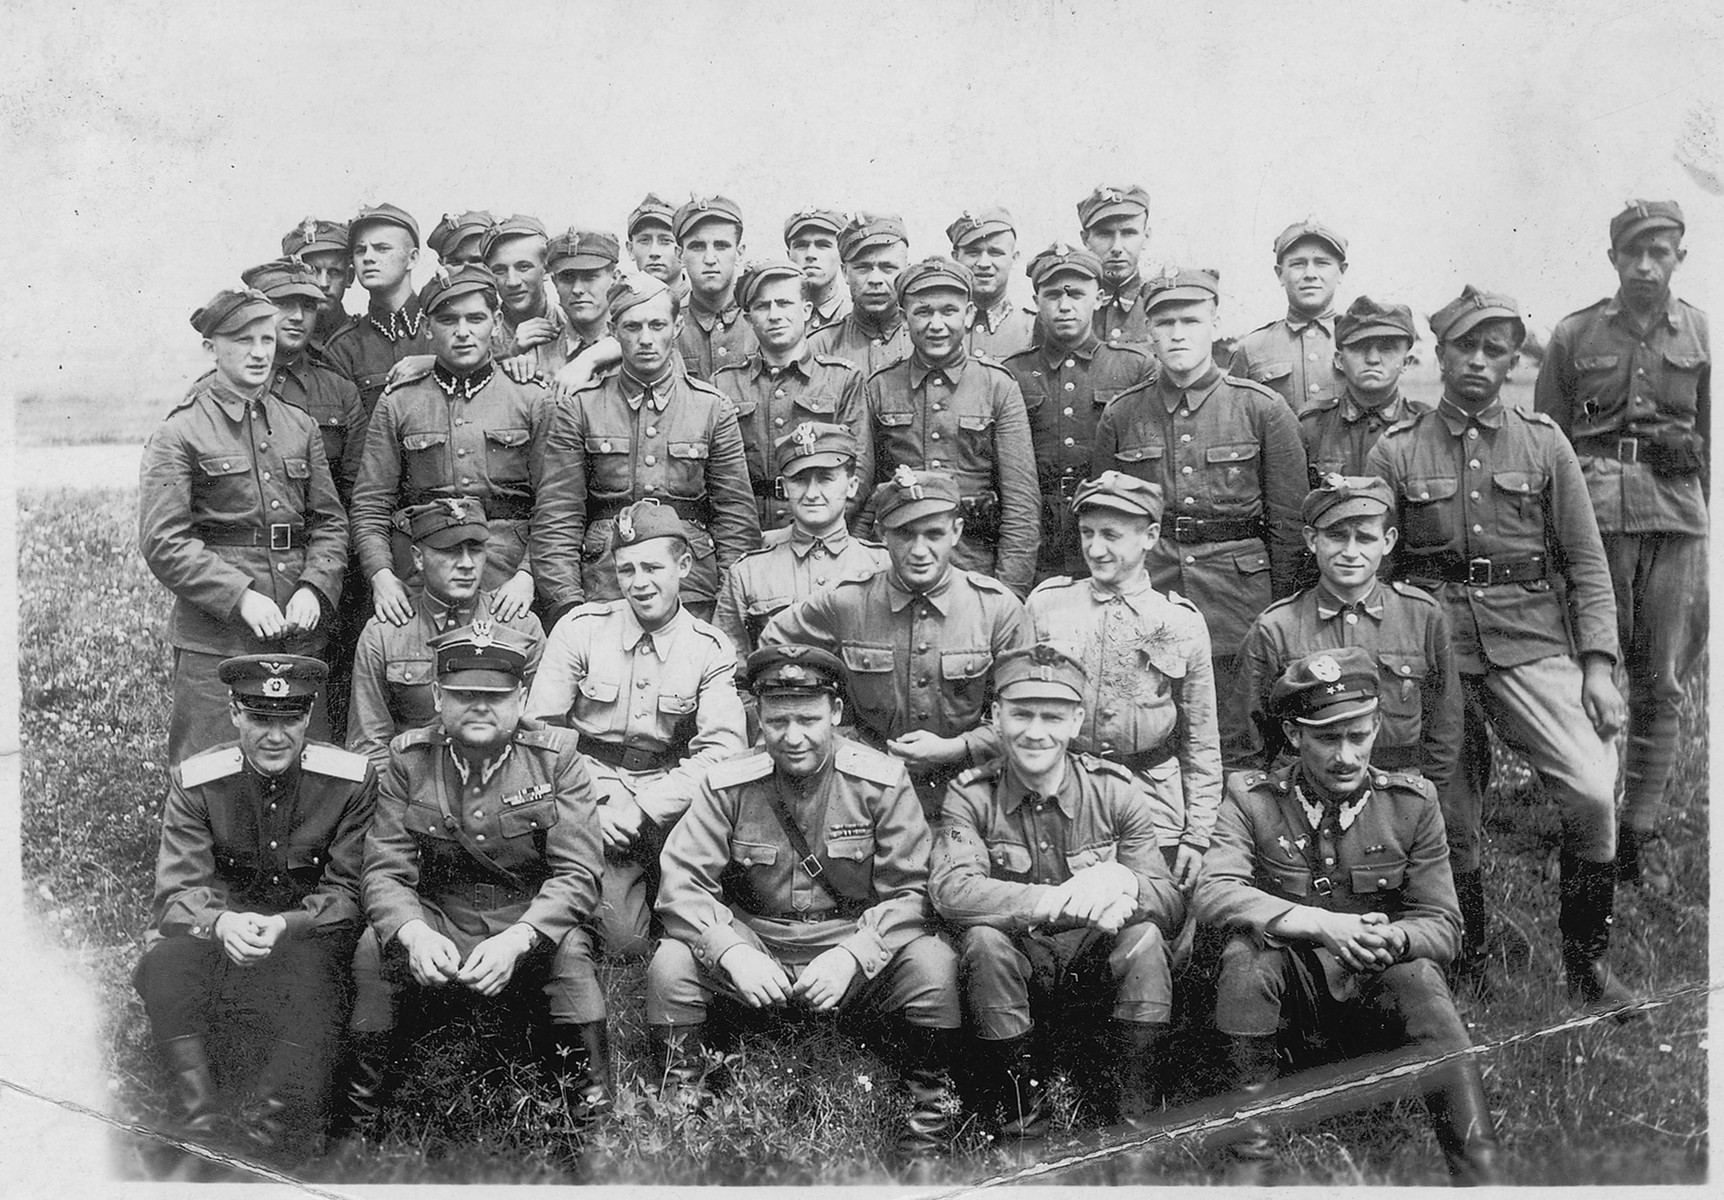 Group portrait of soldiers in the postwar Polish army.  Shmuel Willenberg is pictured in the front row on the far right.